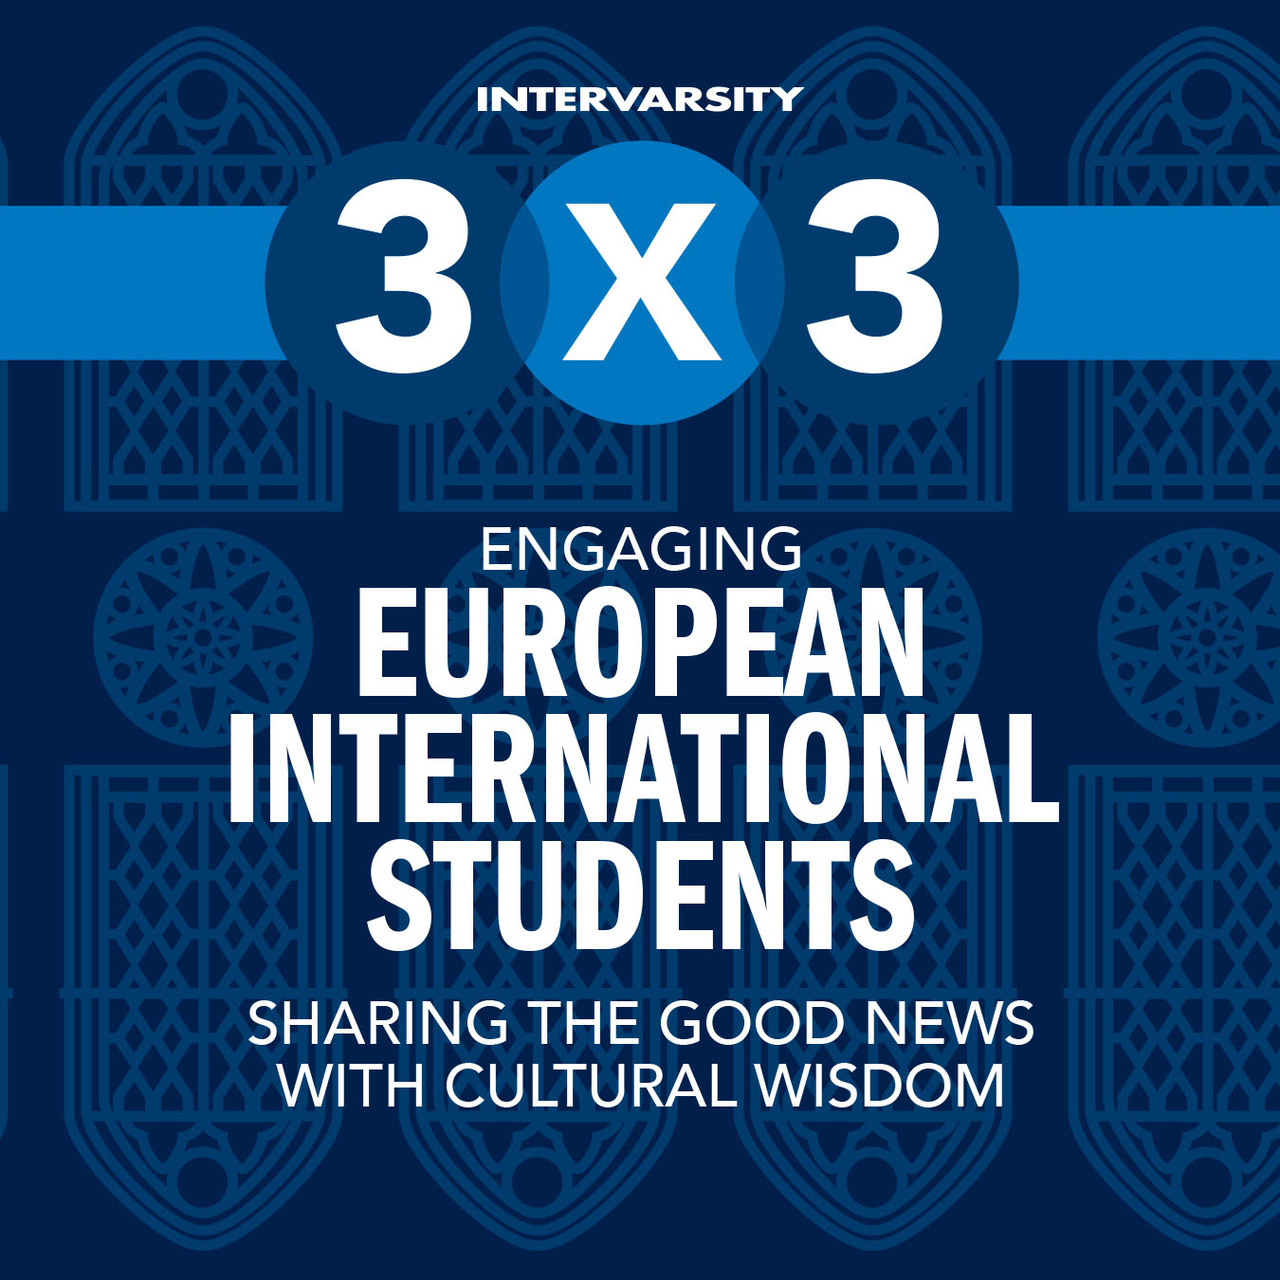 Engaging European International Students 3x3 Quick Guide (bundle of 10)